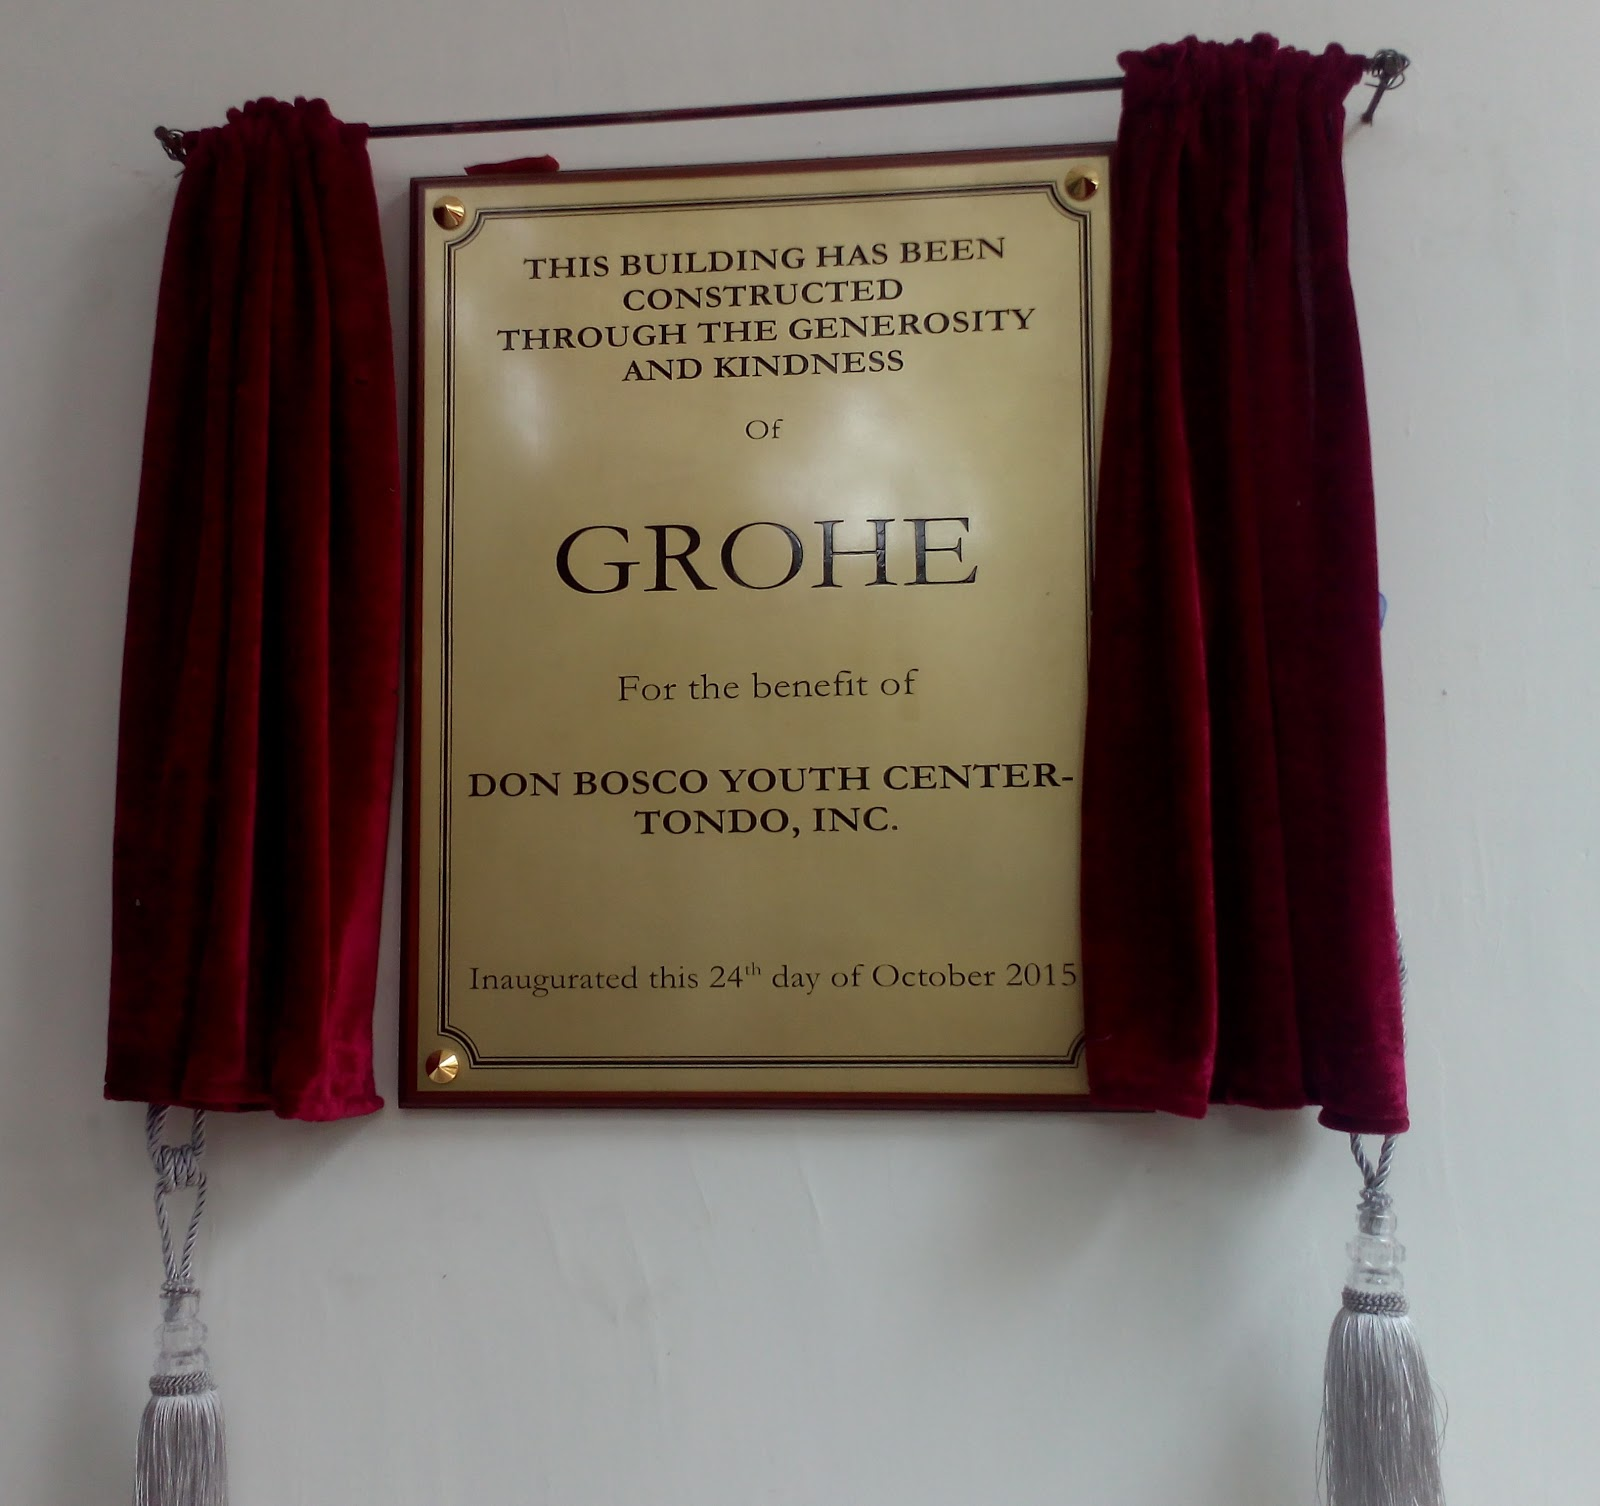 New GROHE Dual Tech Training Facility opens in the Philippines